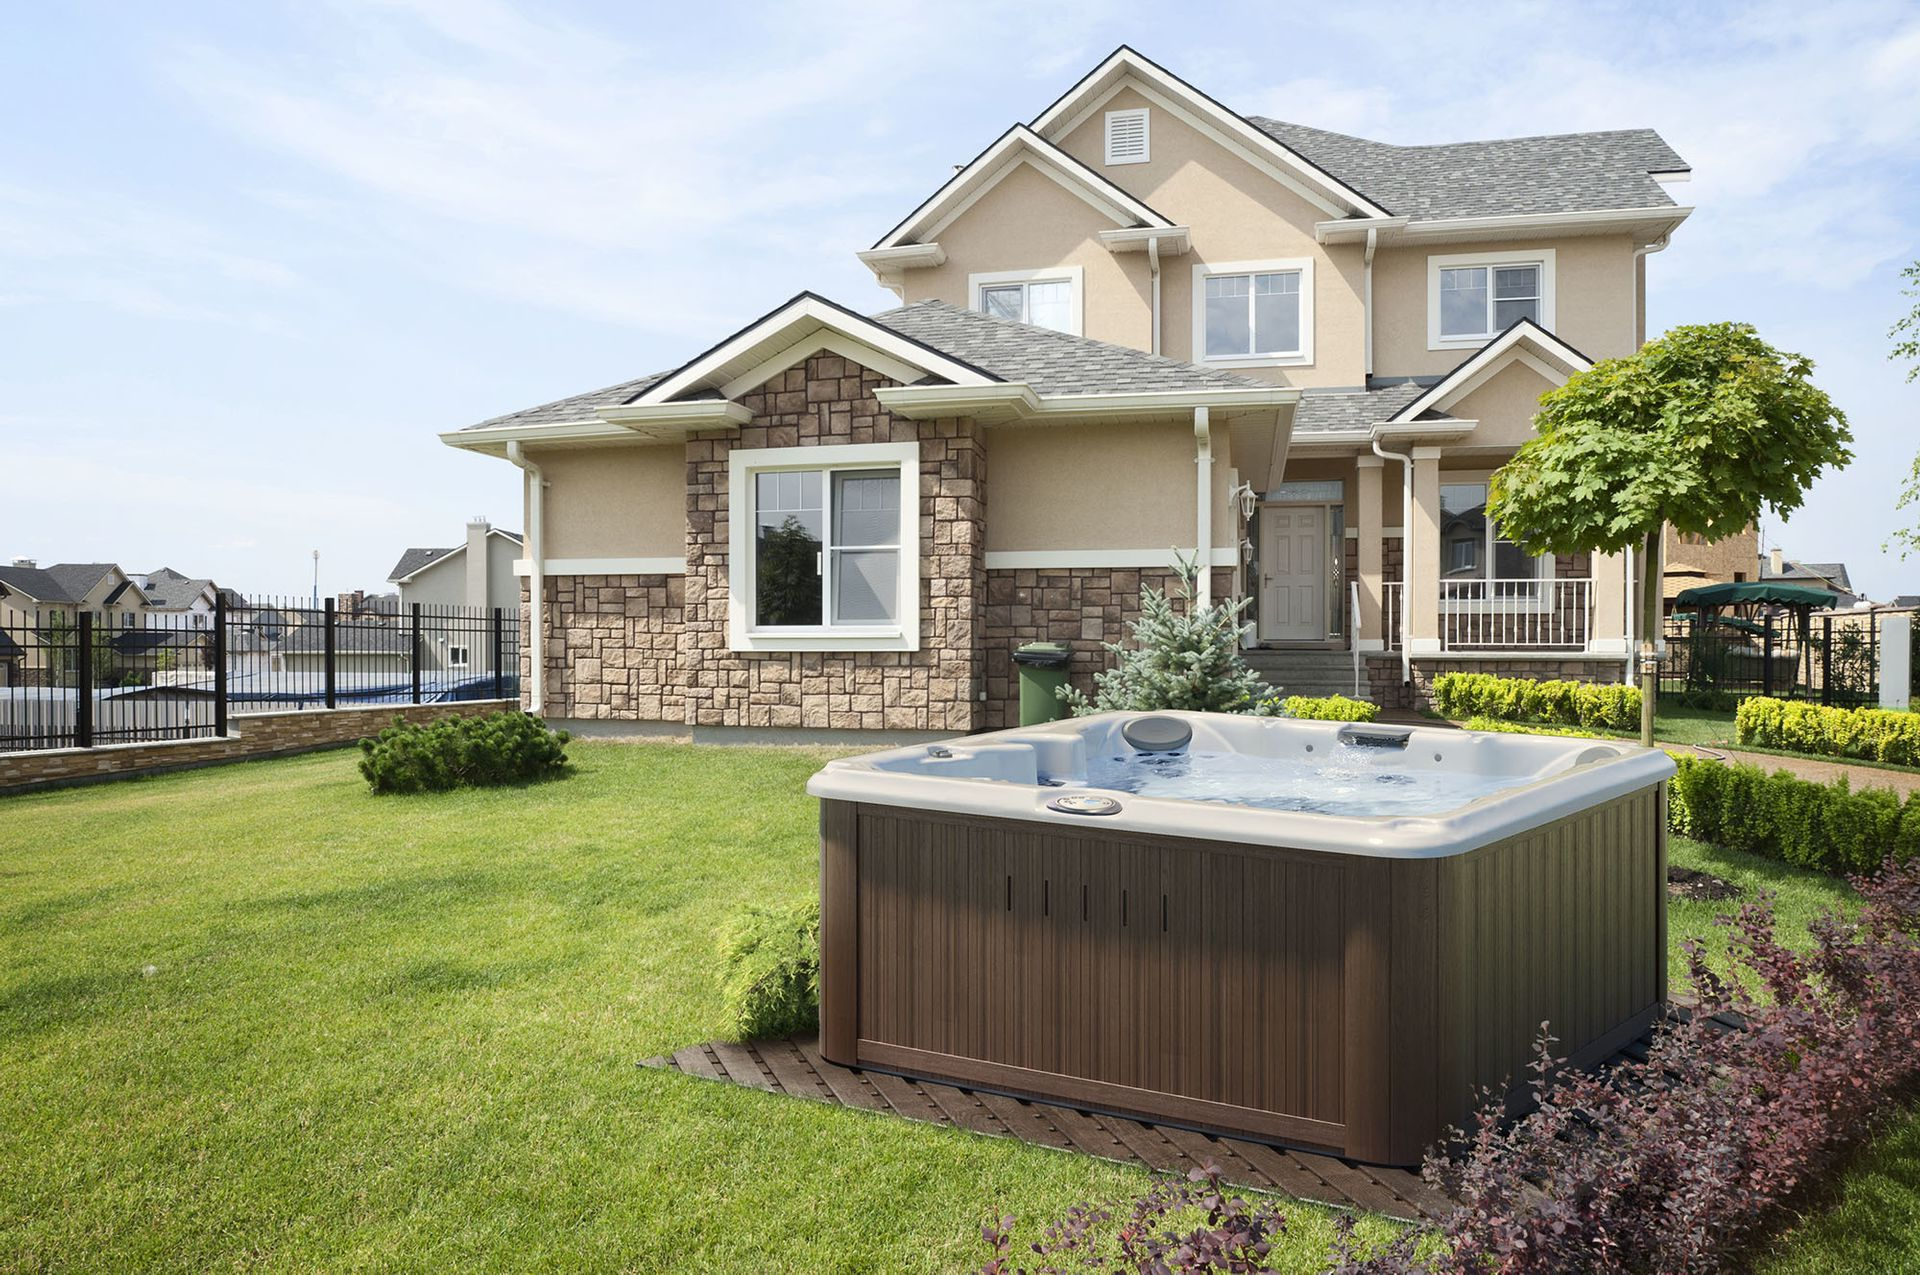 Outdoor spa installation with ideal hot tub water temperature